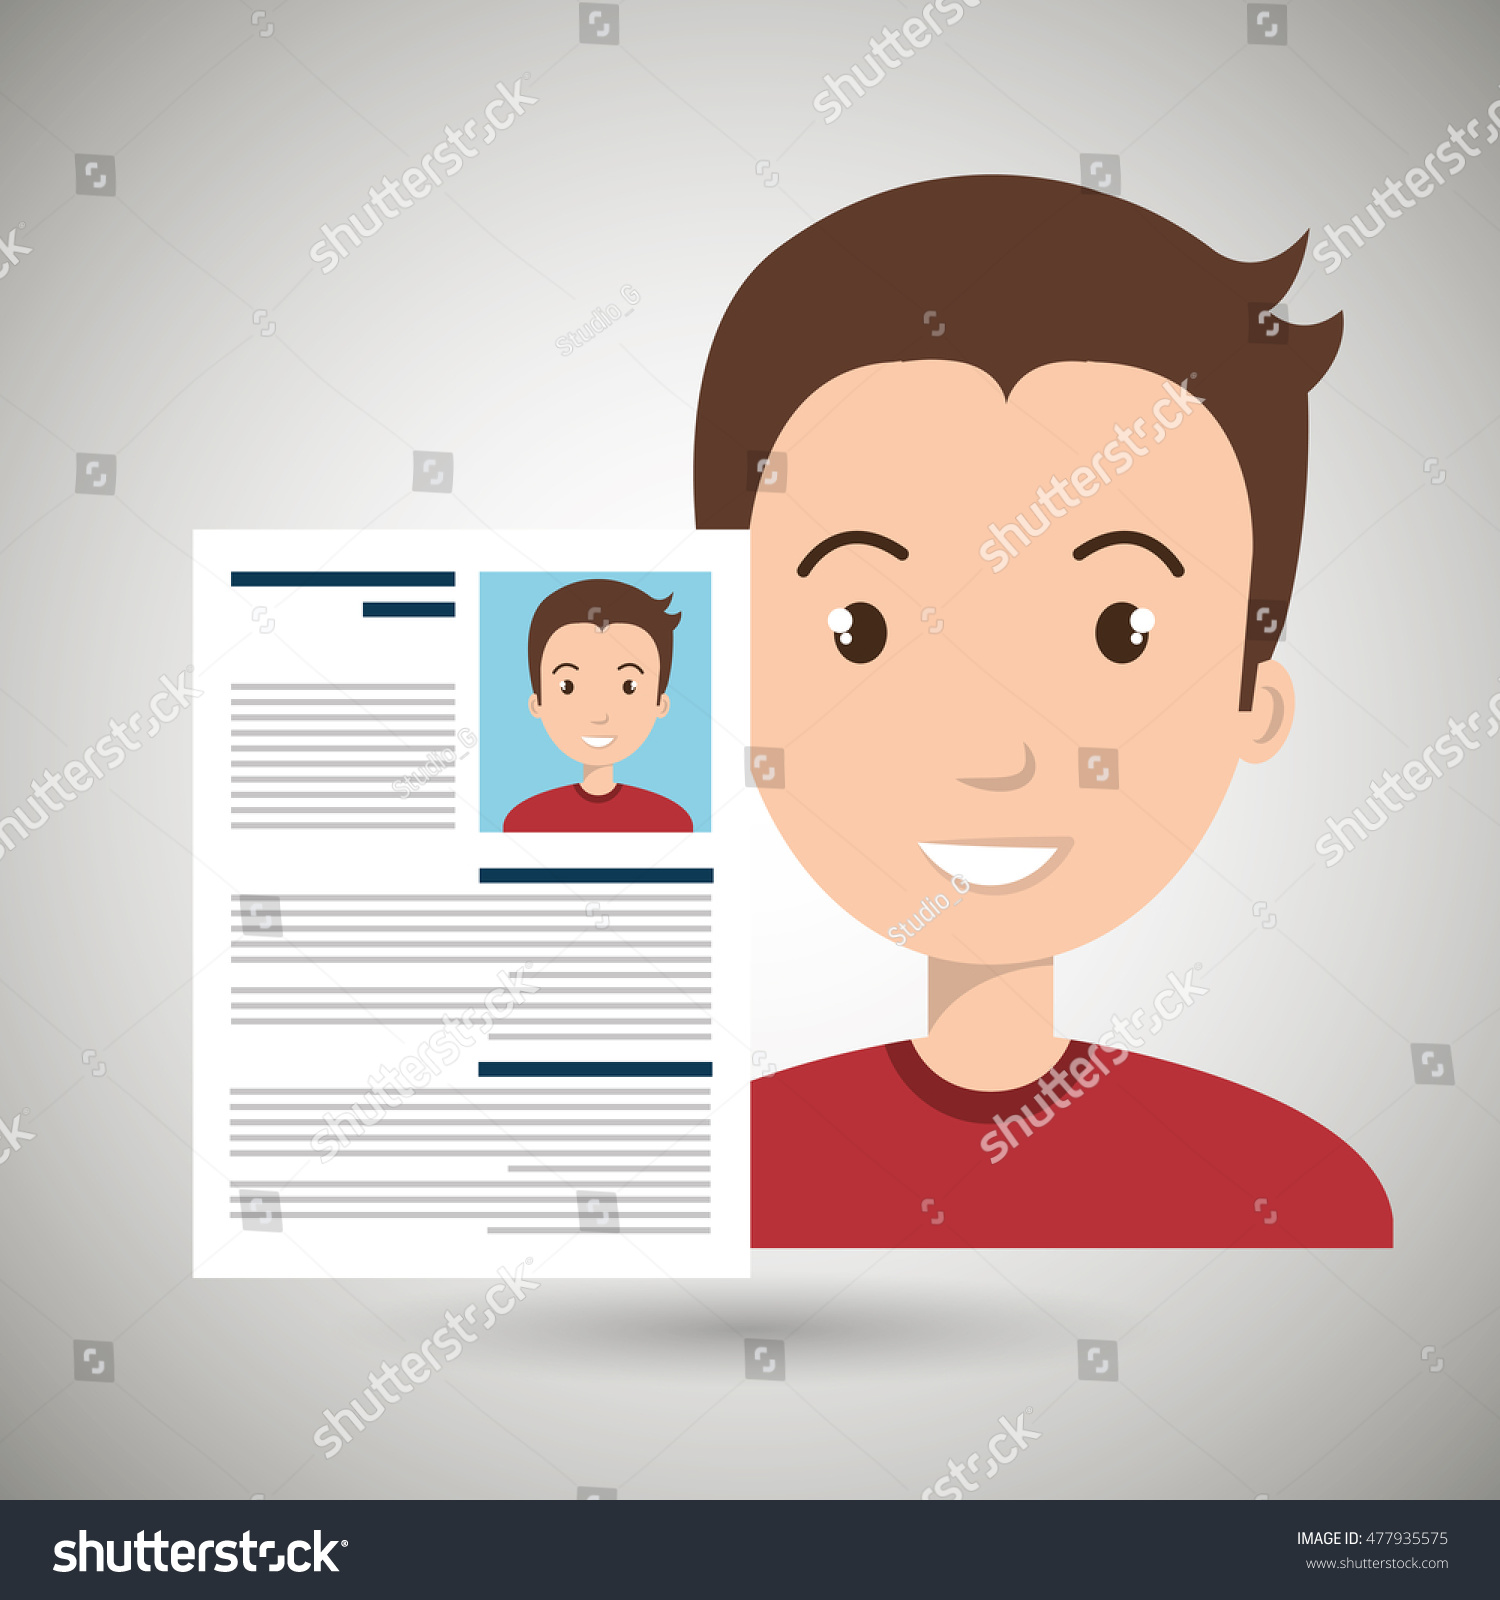 cv resume man icon stock vector 477935575